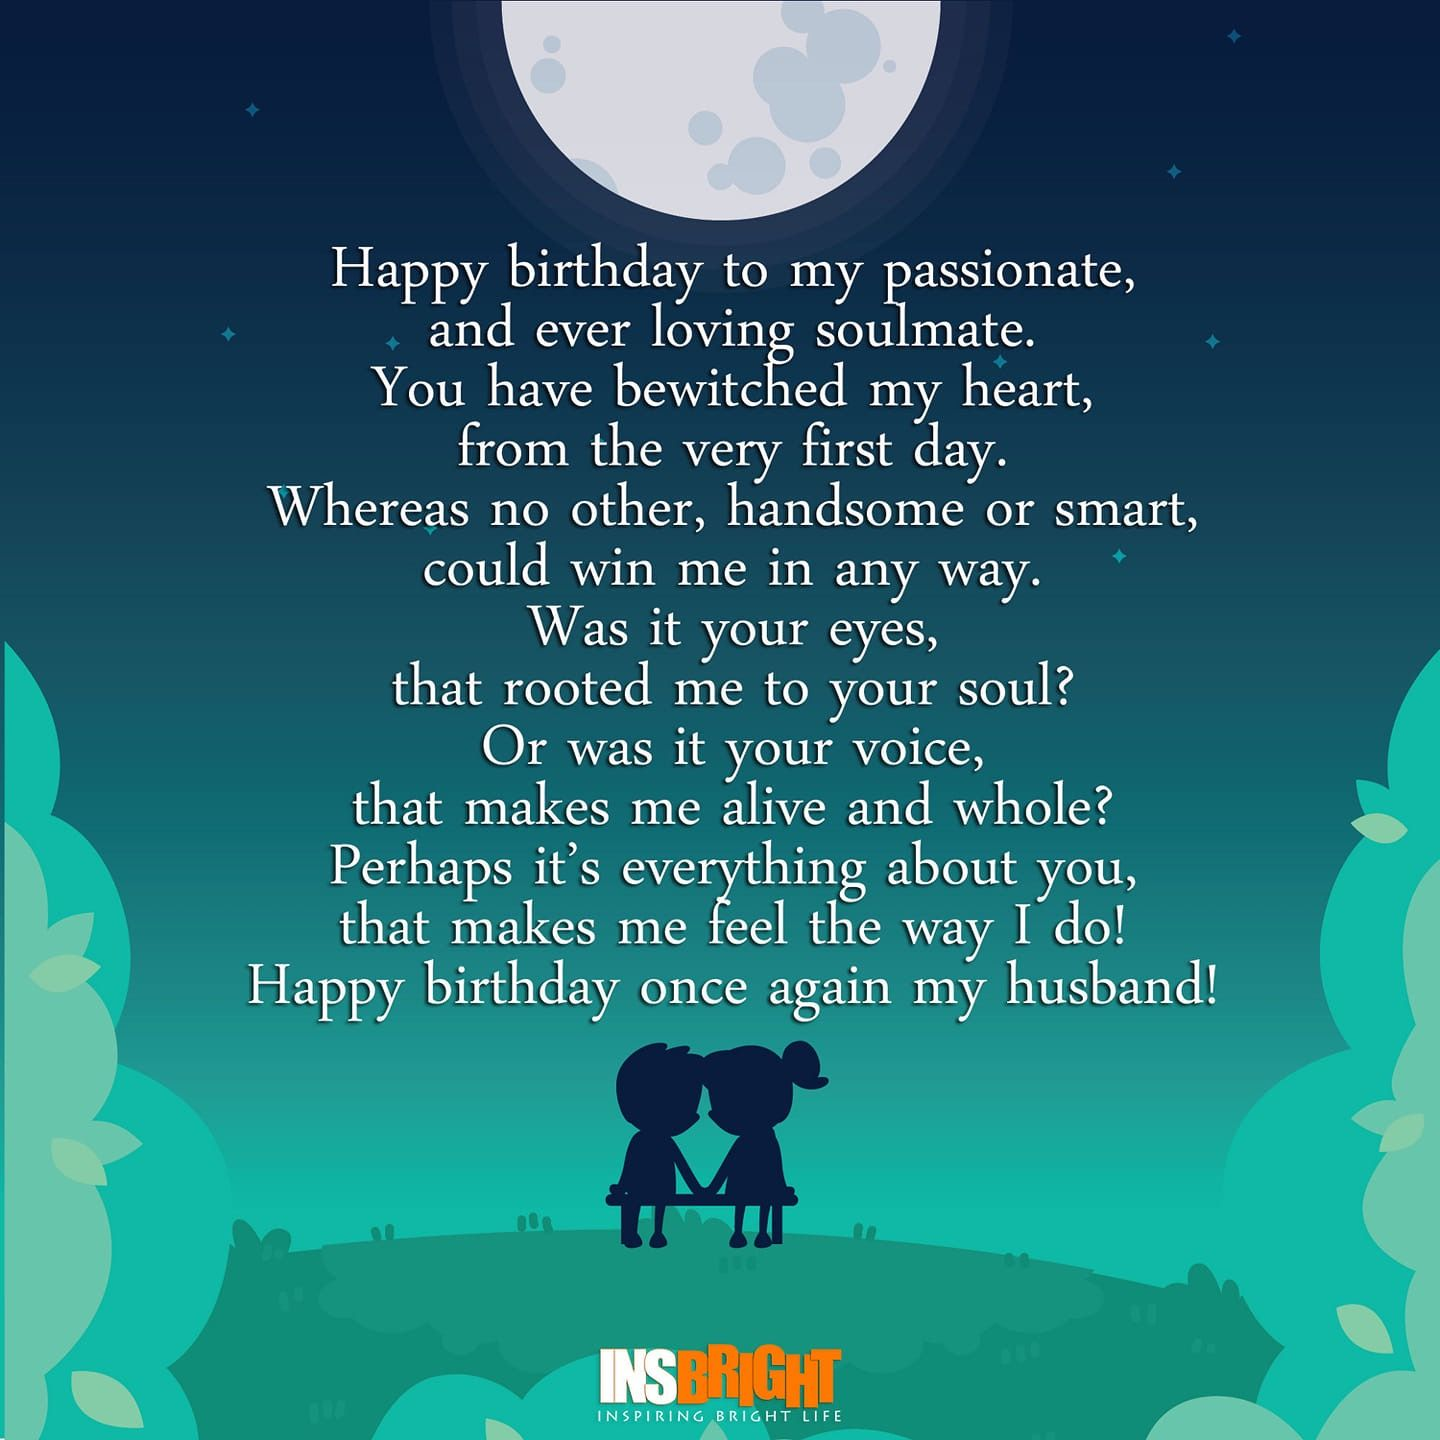 Pin by Tammy Guyach on Quotes Birthday poems for husband